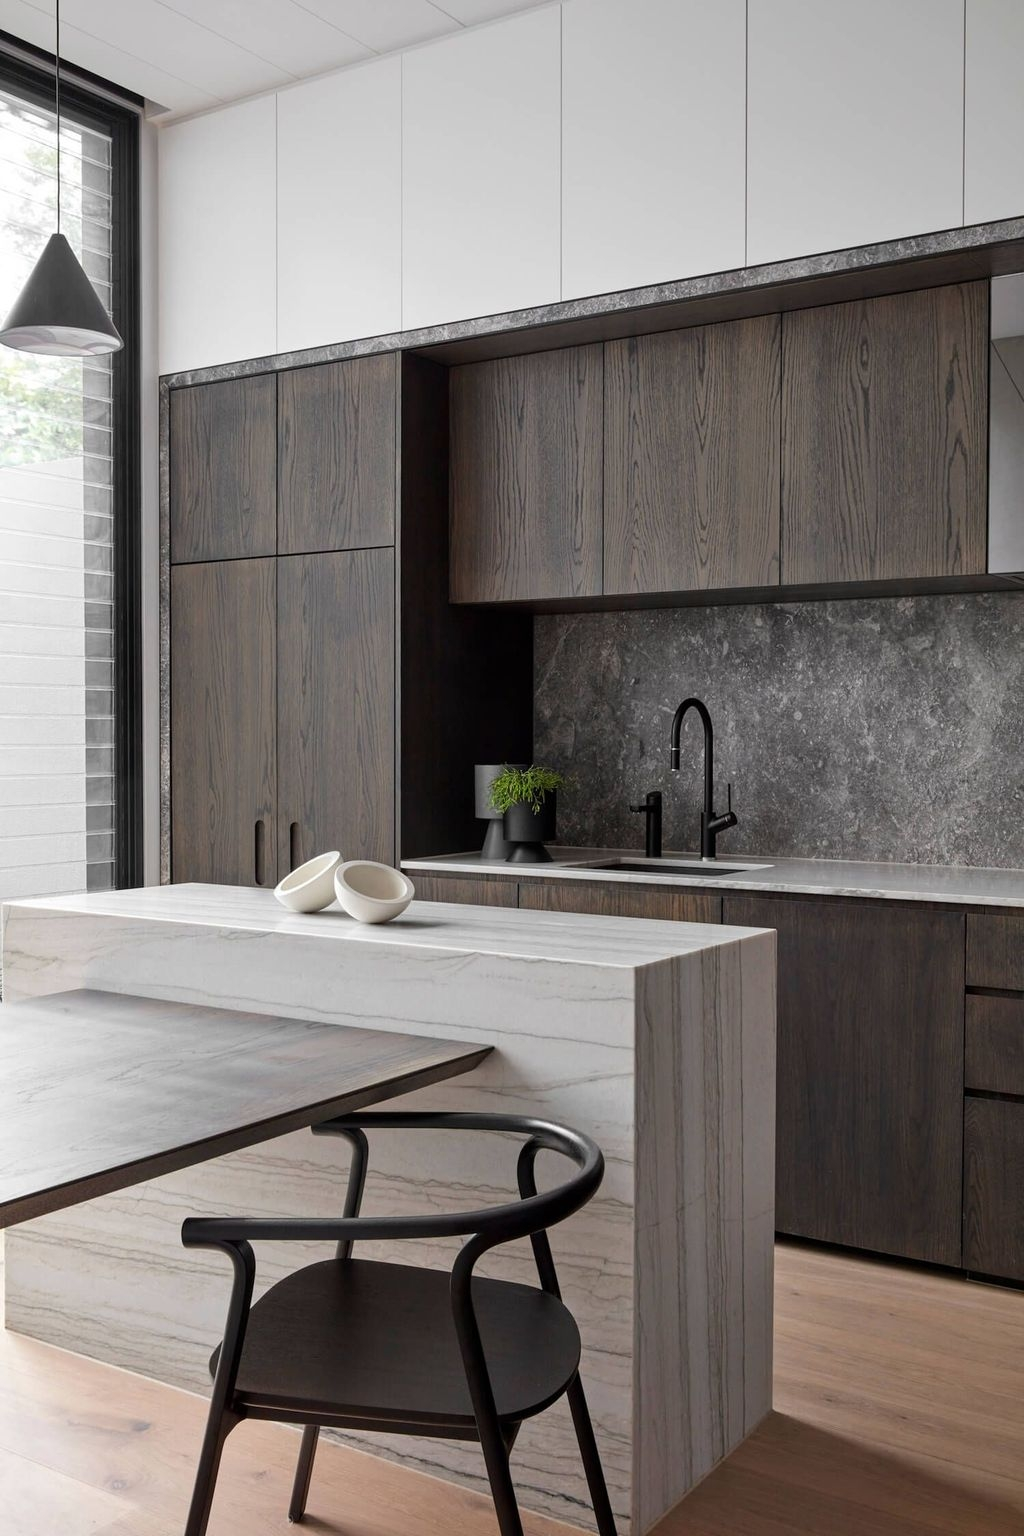 Unordinary Kitchen Colors Design Ideas That Looks Cool47